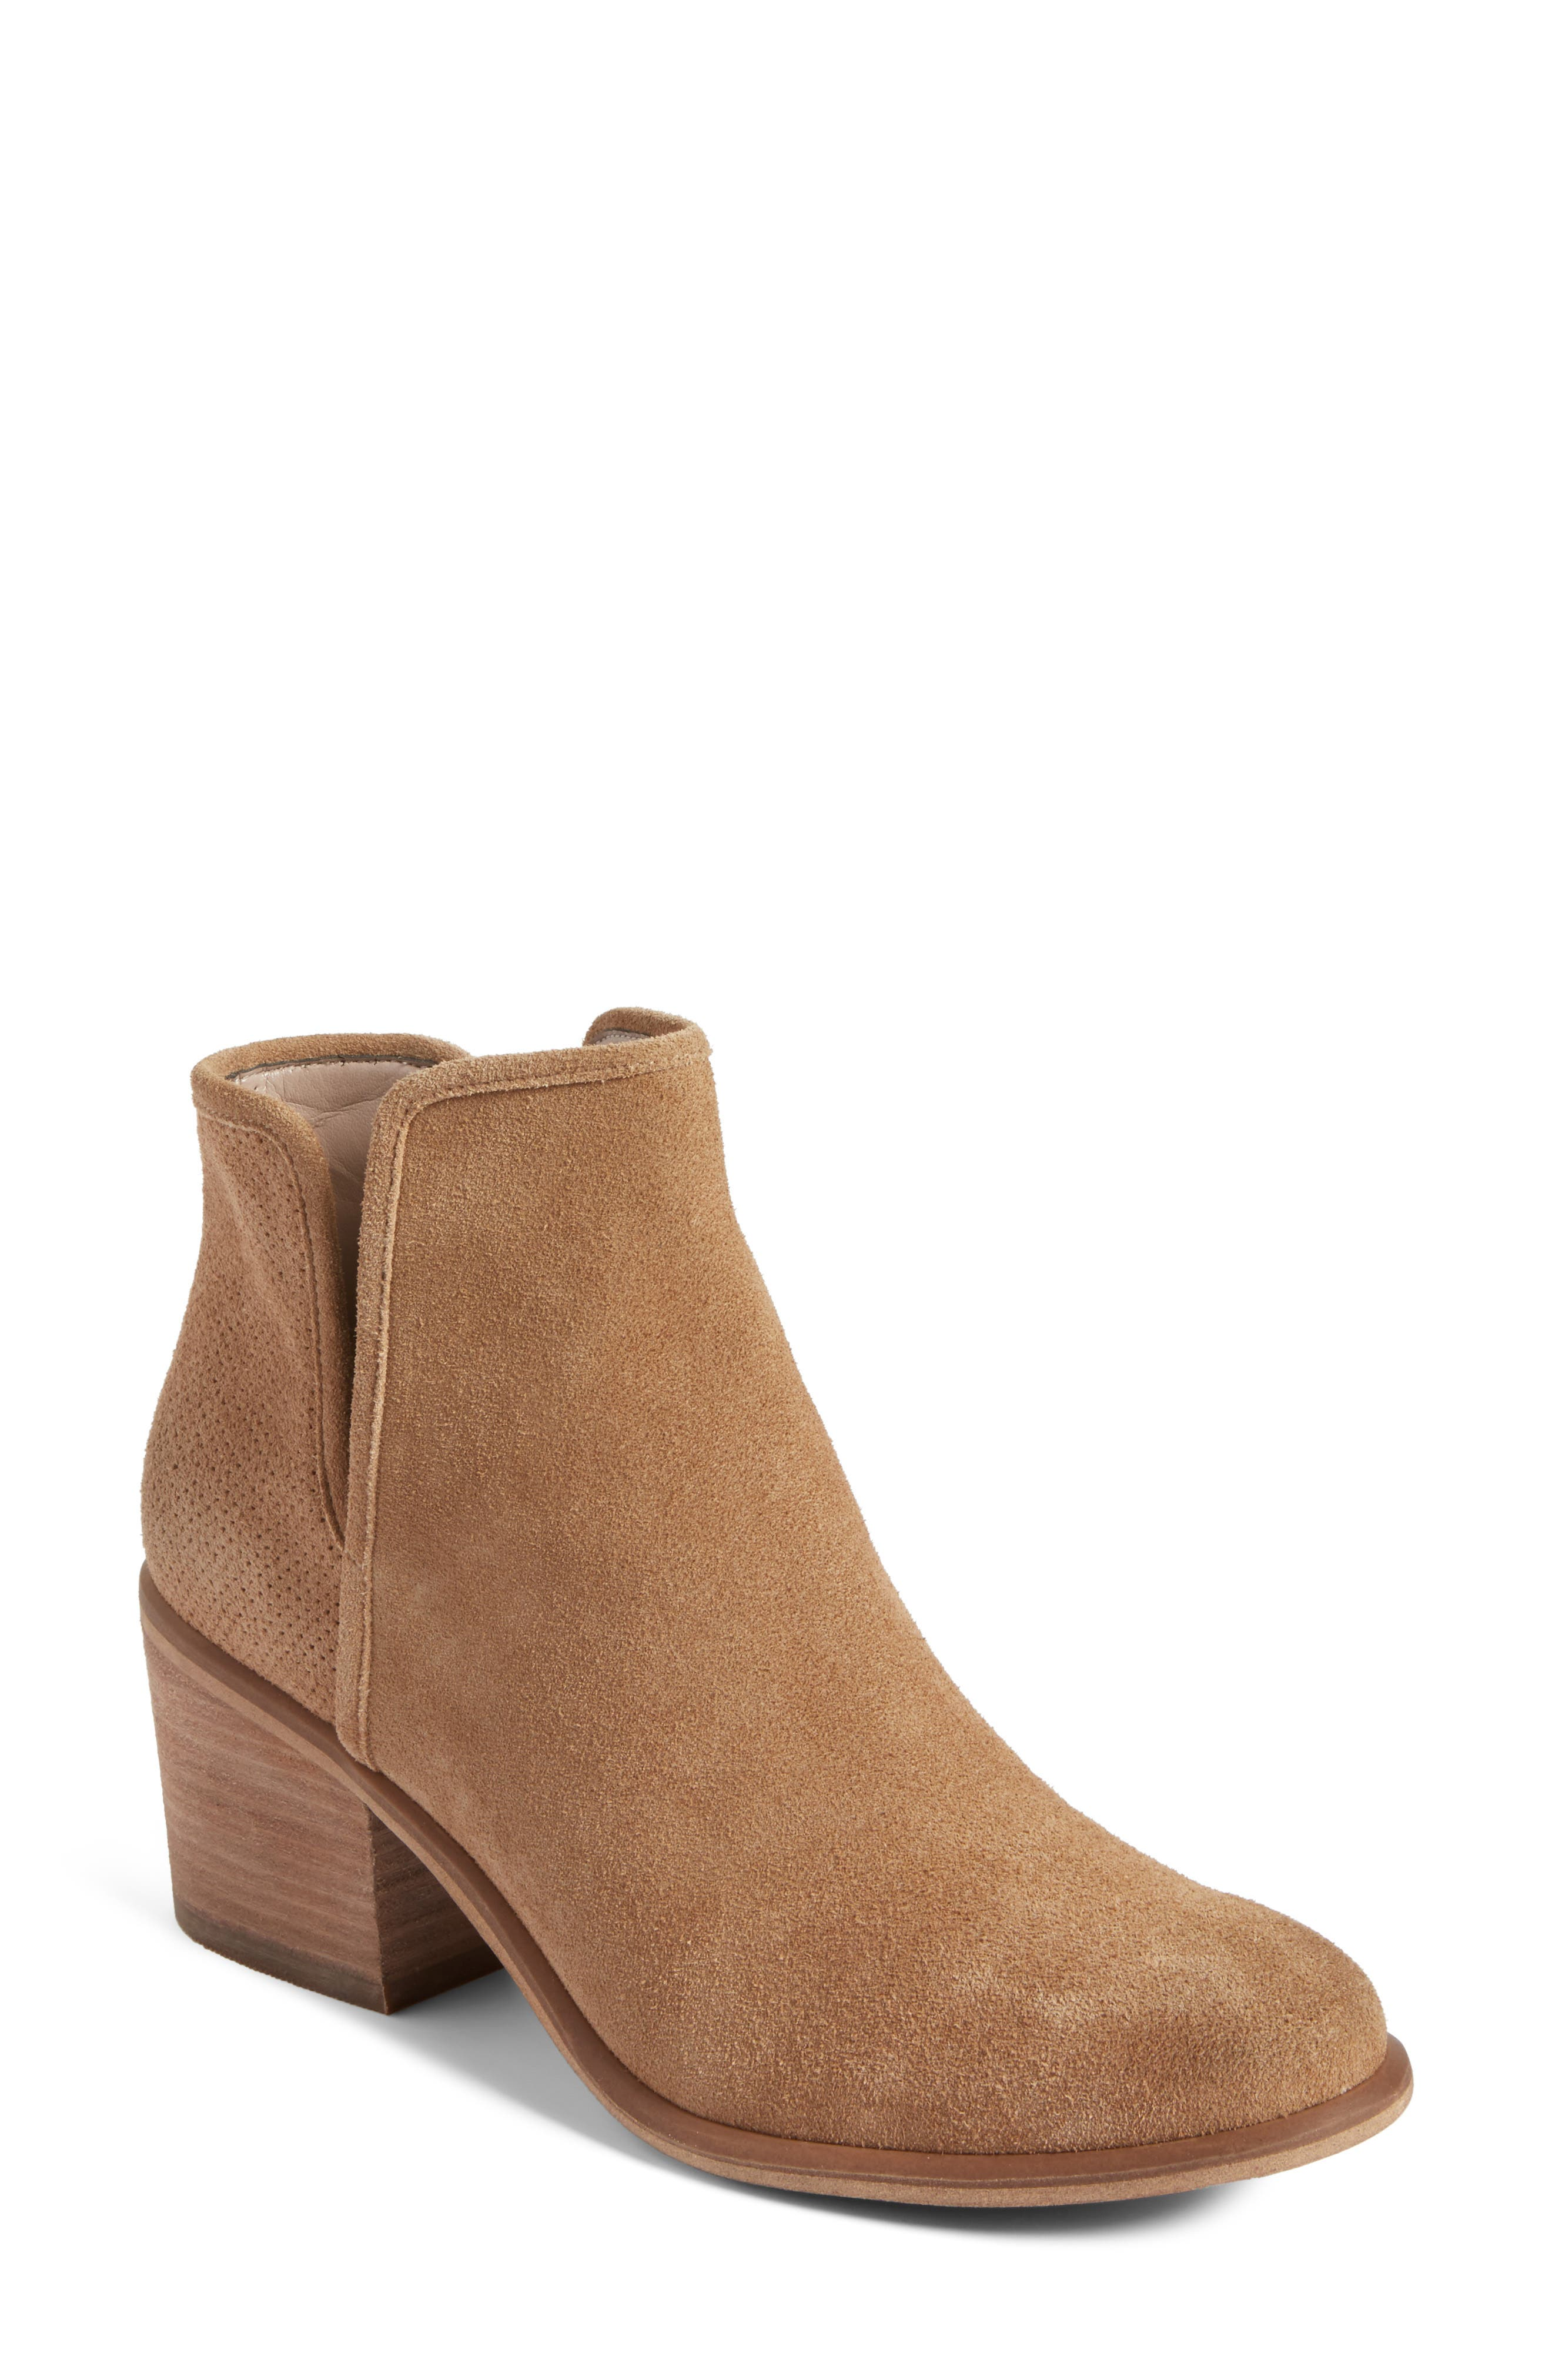 Barris Block Heel Bootie,                             Main thumbnail 1, color,                             New Taupe Suede